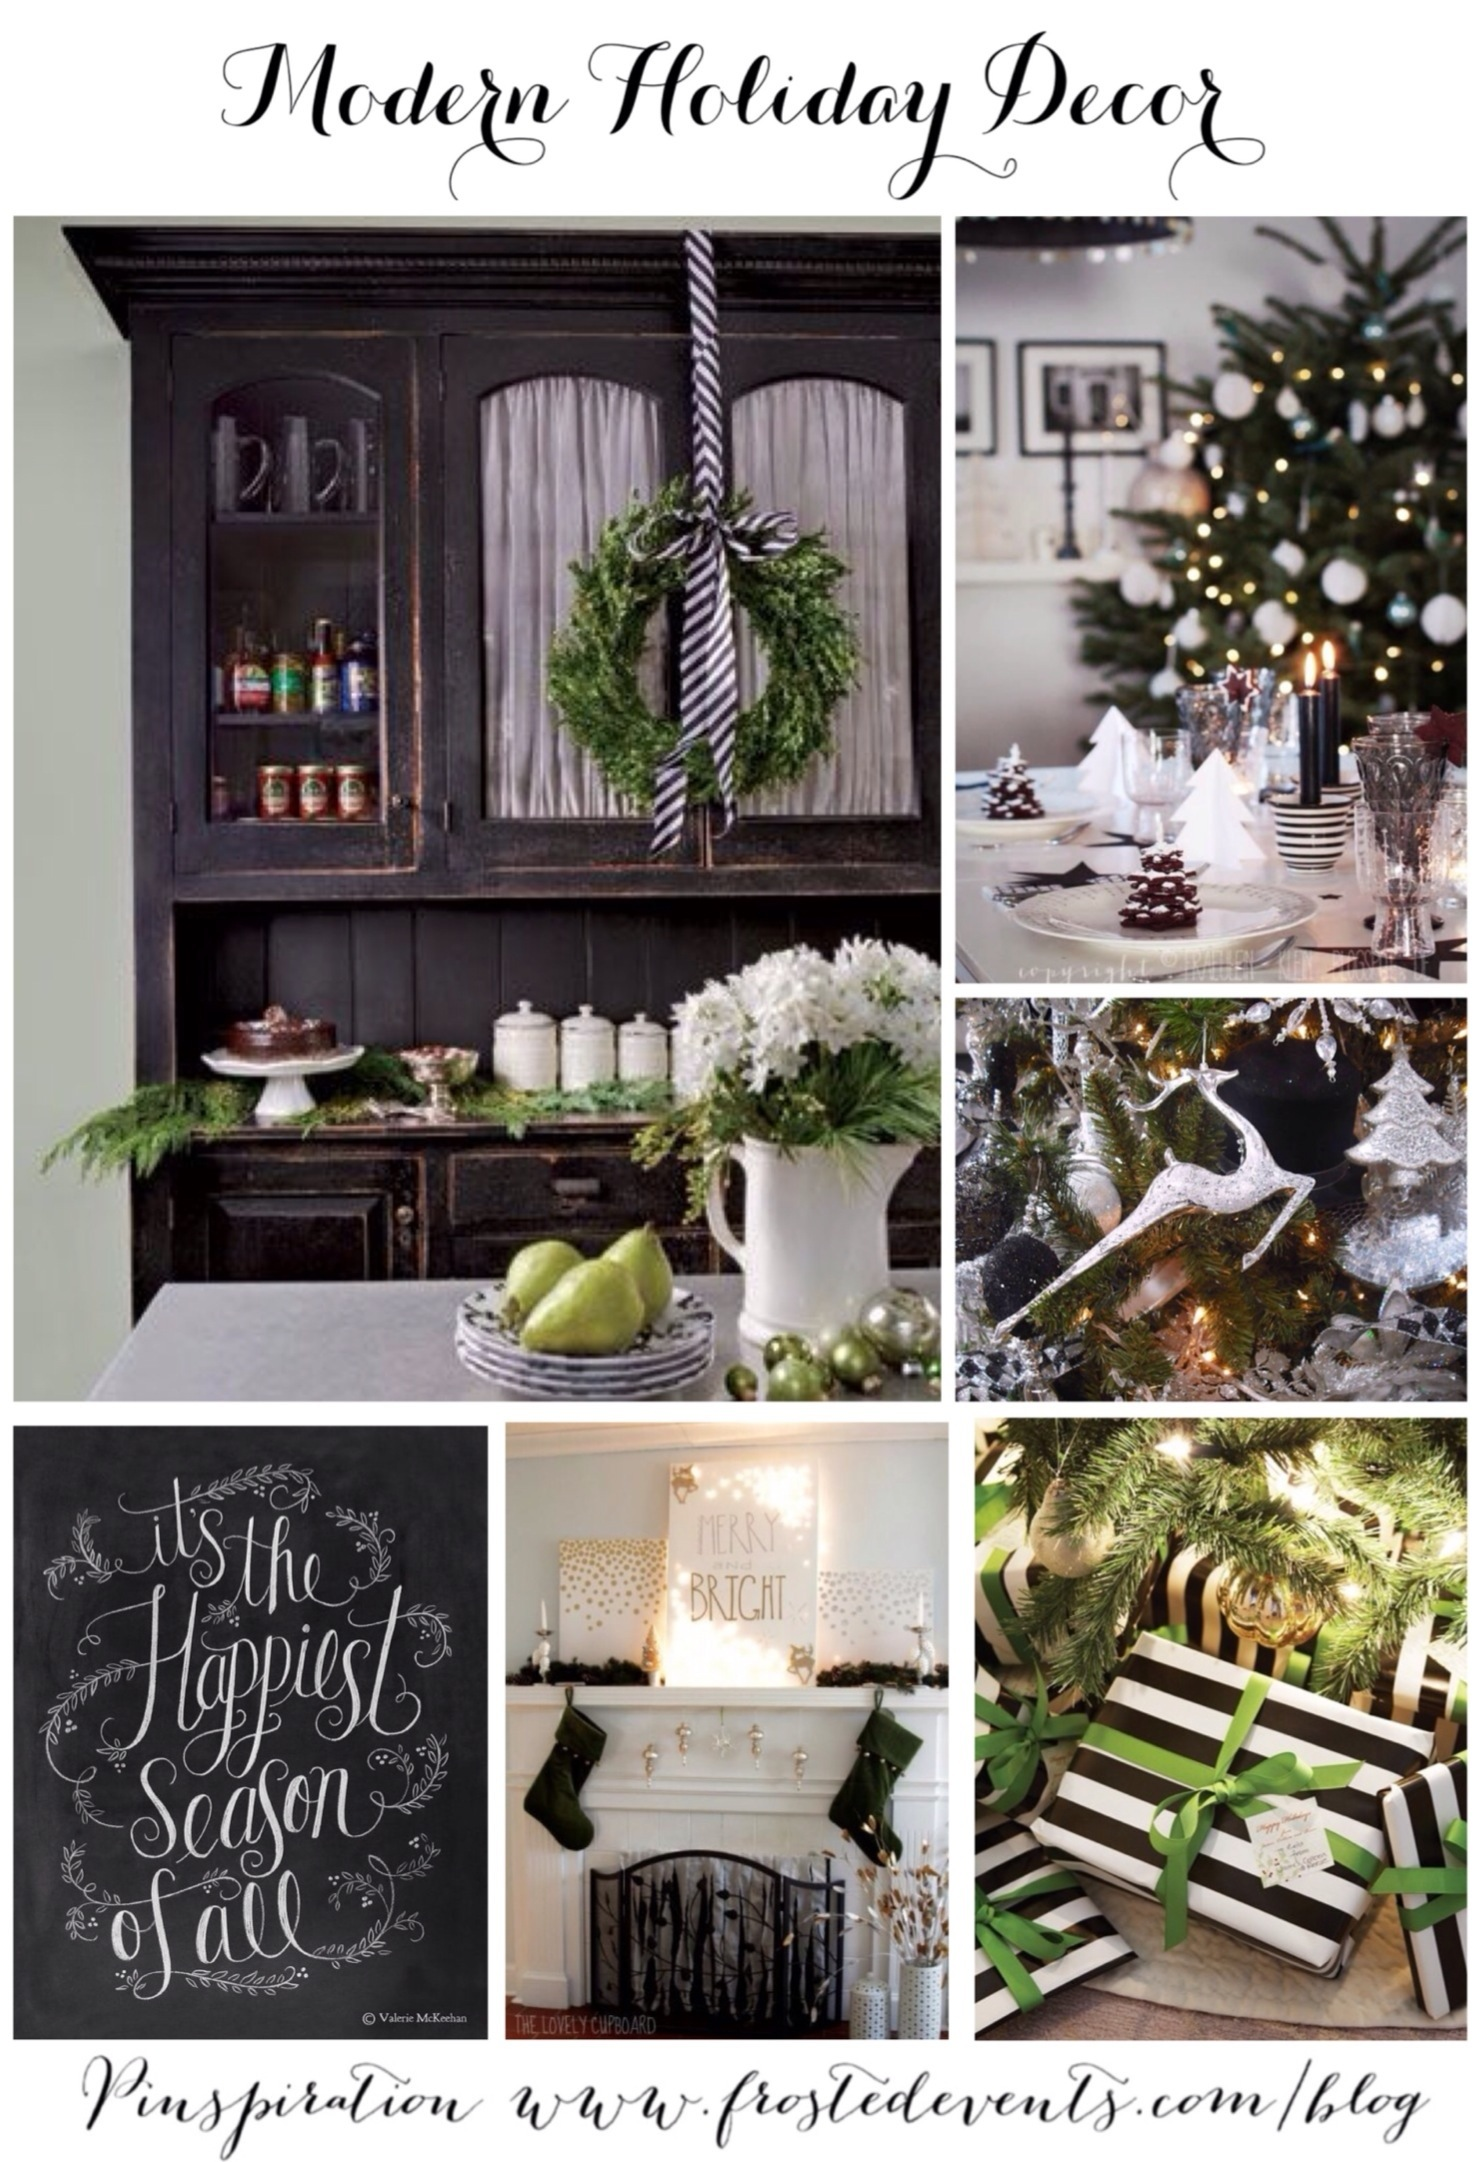 Christmas Decoration Ideas -Merry Christmas Pictures - Green, black and white holiday decor via Misty Nelson @frostedevents